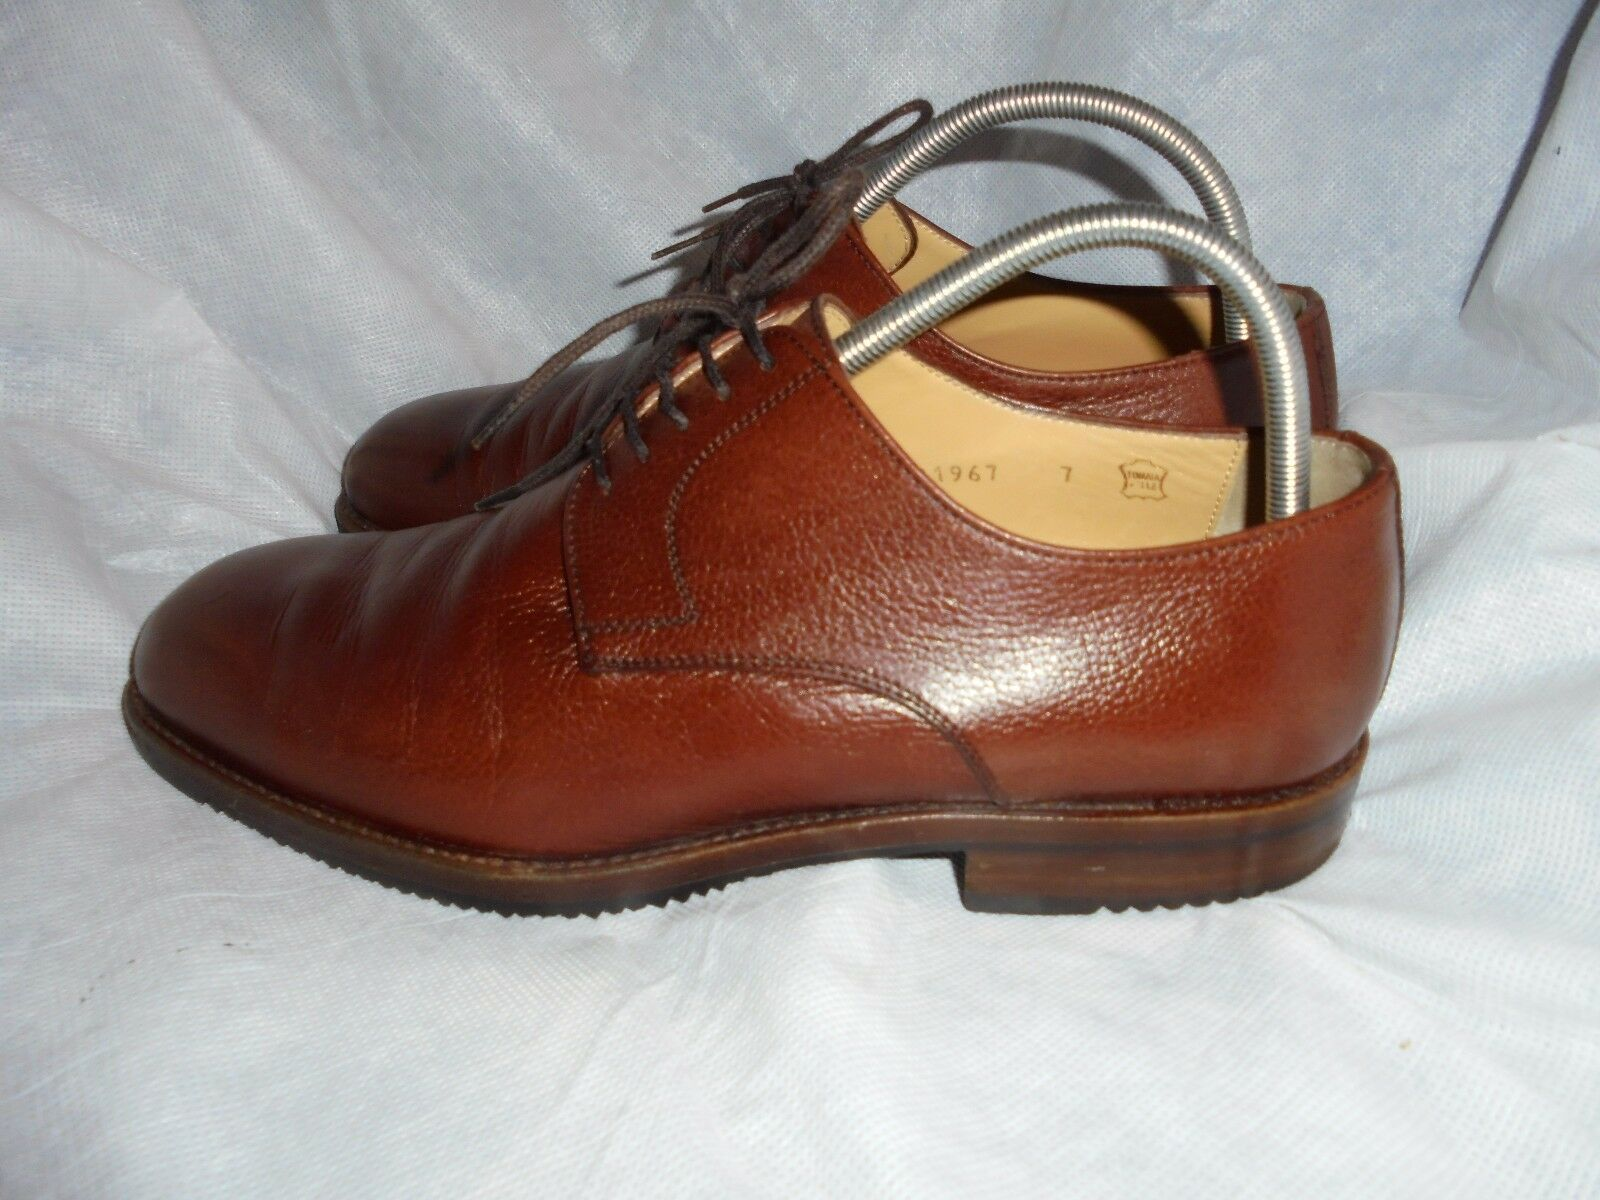 BRUNO MAGLI MEN'S BROWN LEATHER LACE UP SHOE SIZE UK 7 EU 41 VGC